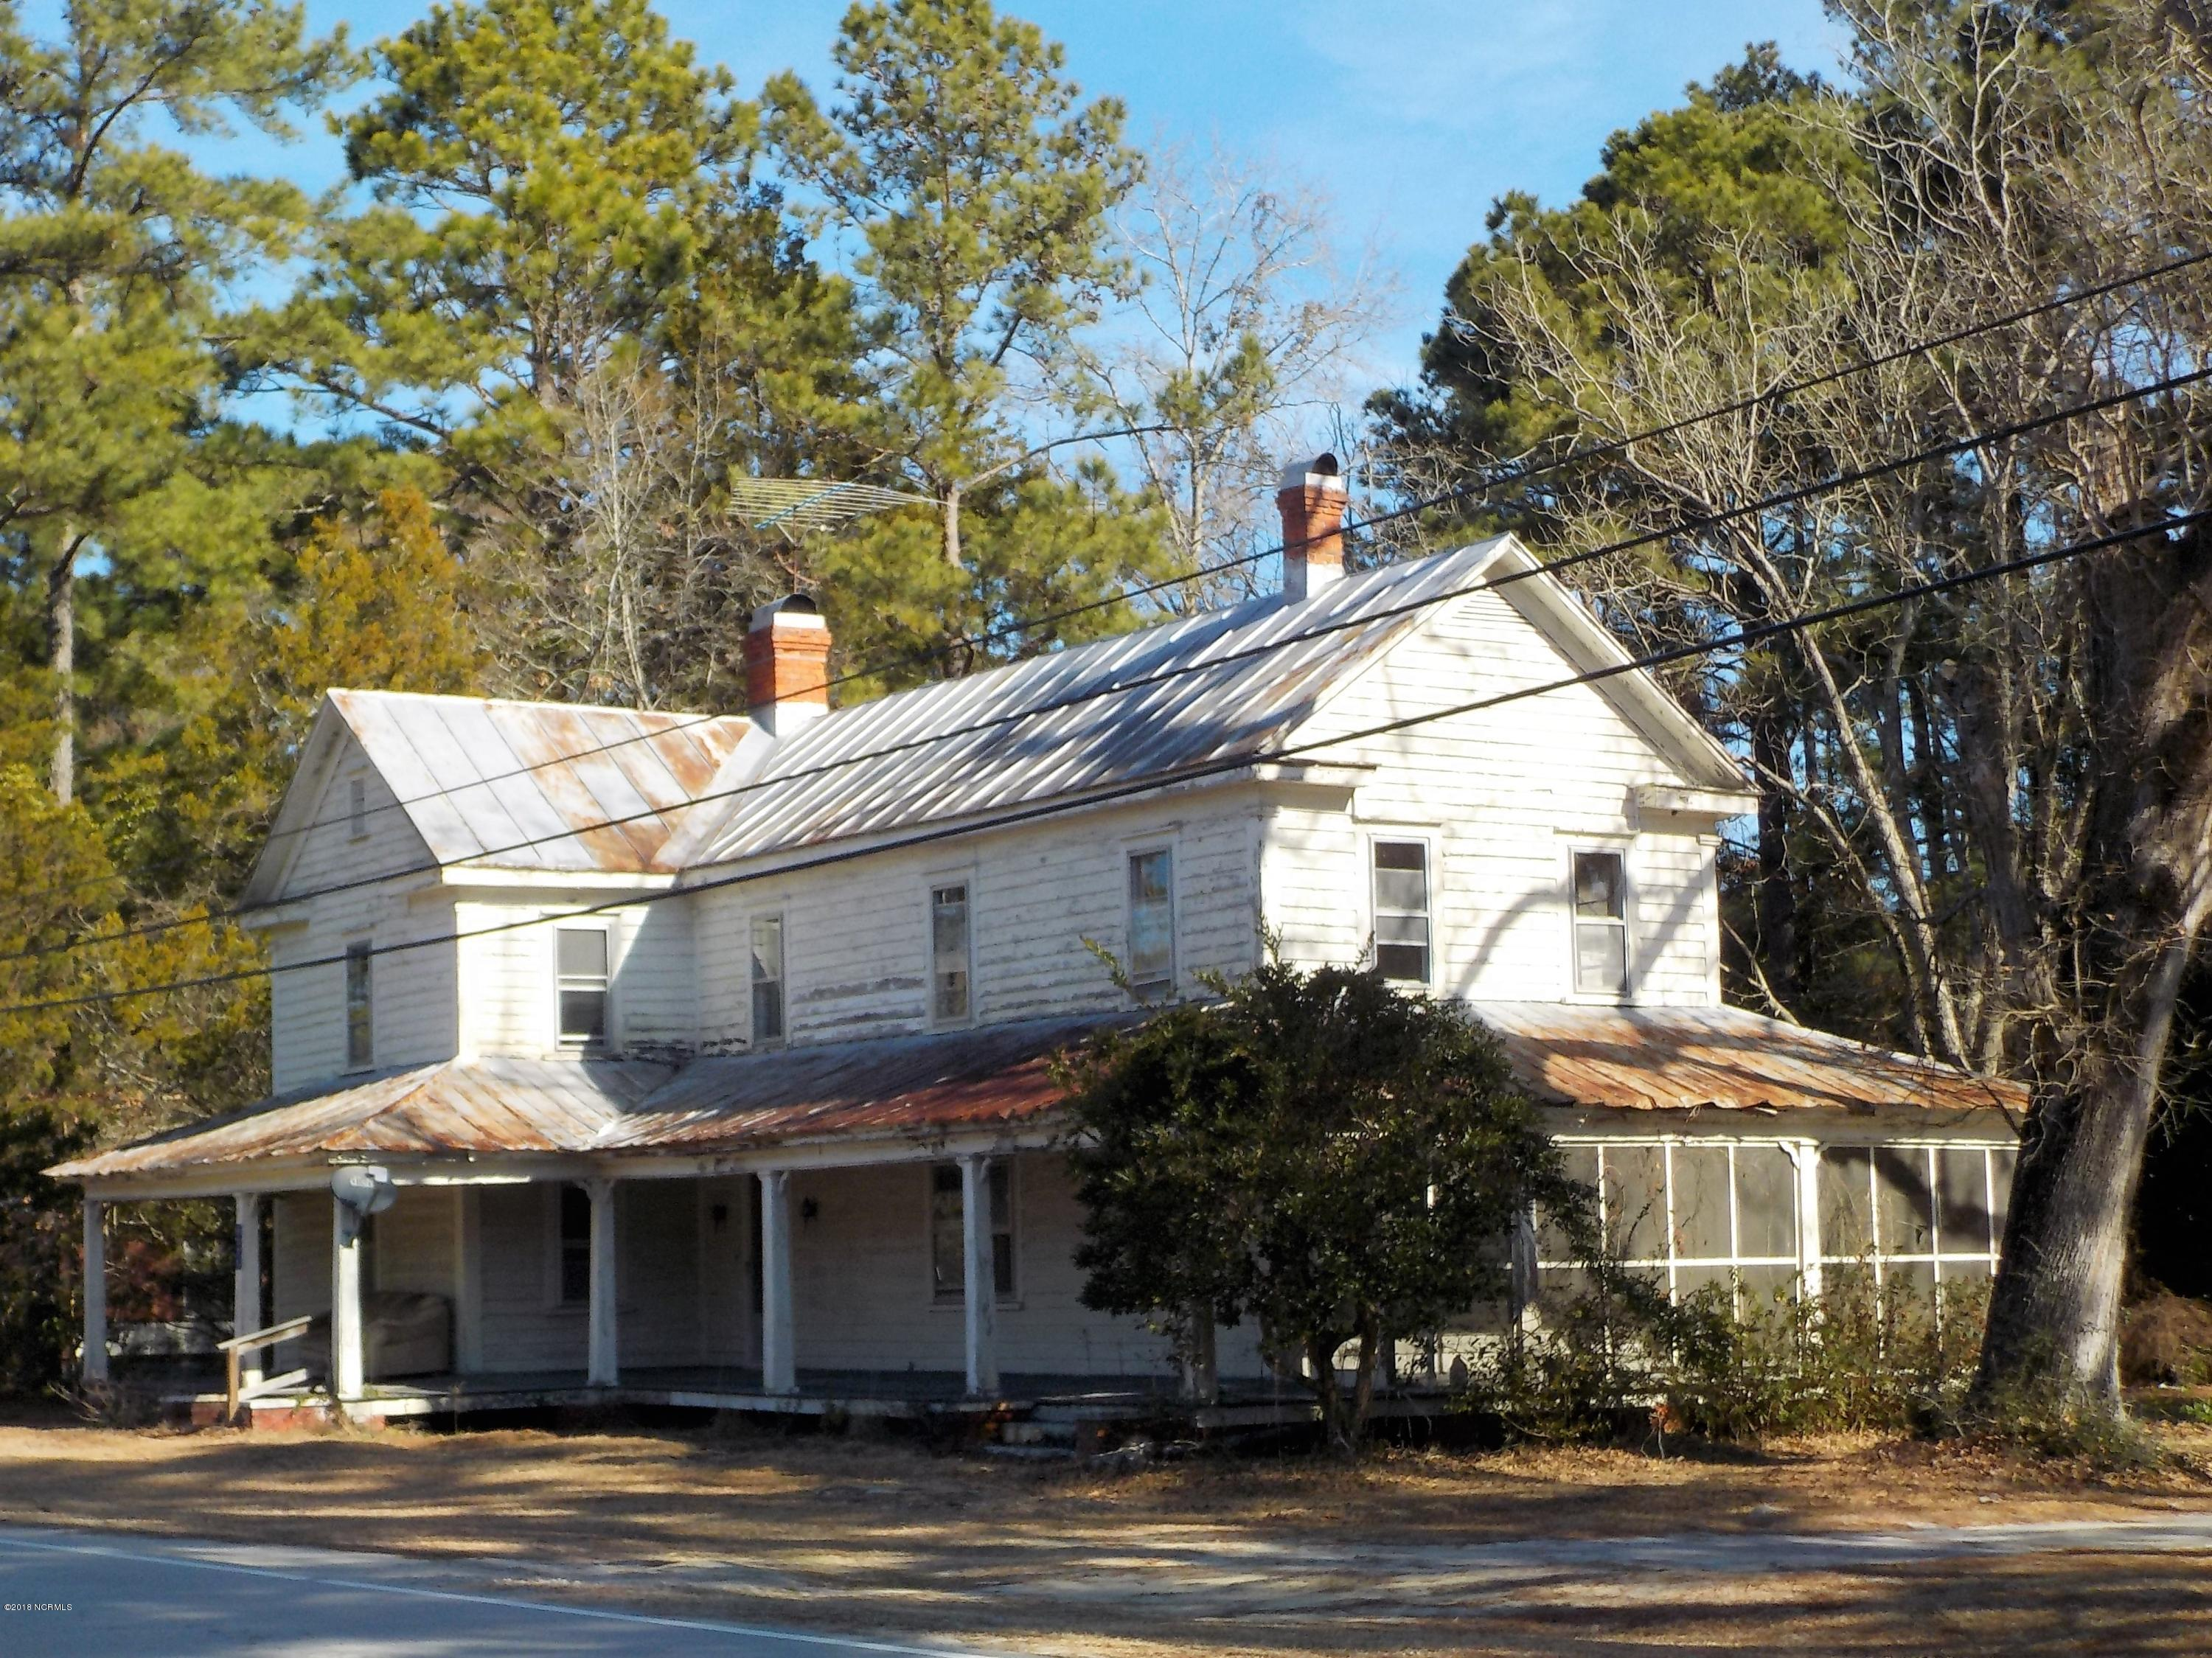 8375 Nc Highway 306, Arapahoe, North Carolina, 8 Bedrooms Bedrooms, 10 Rooms Rooms,3 BathroomsBathrooms,Single family residence,For sale,Nc Highway 306,100102257